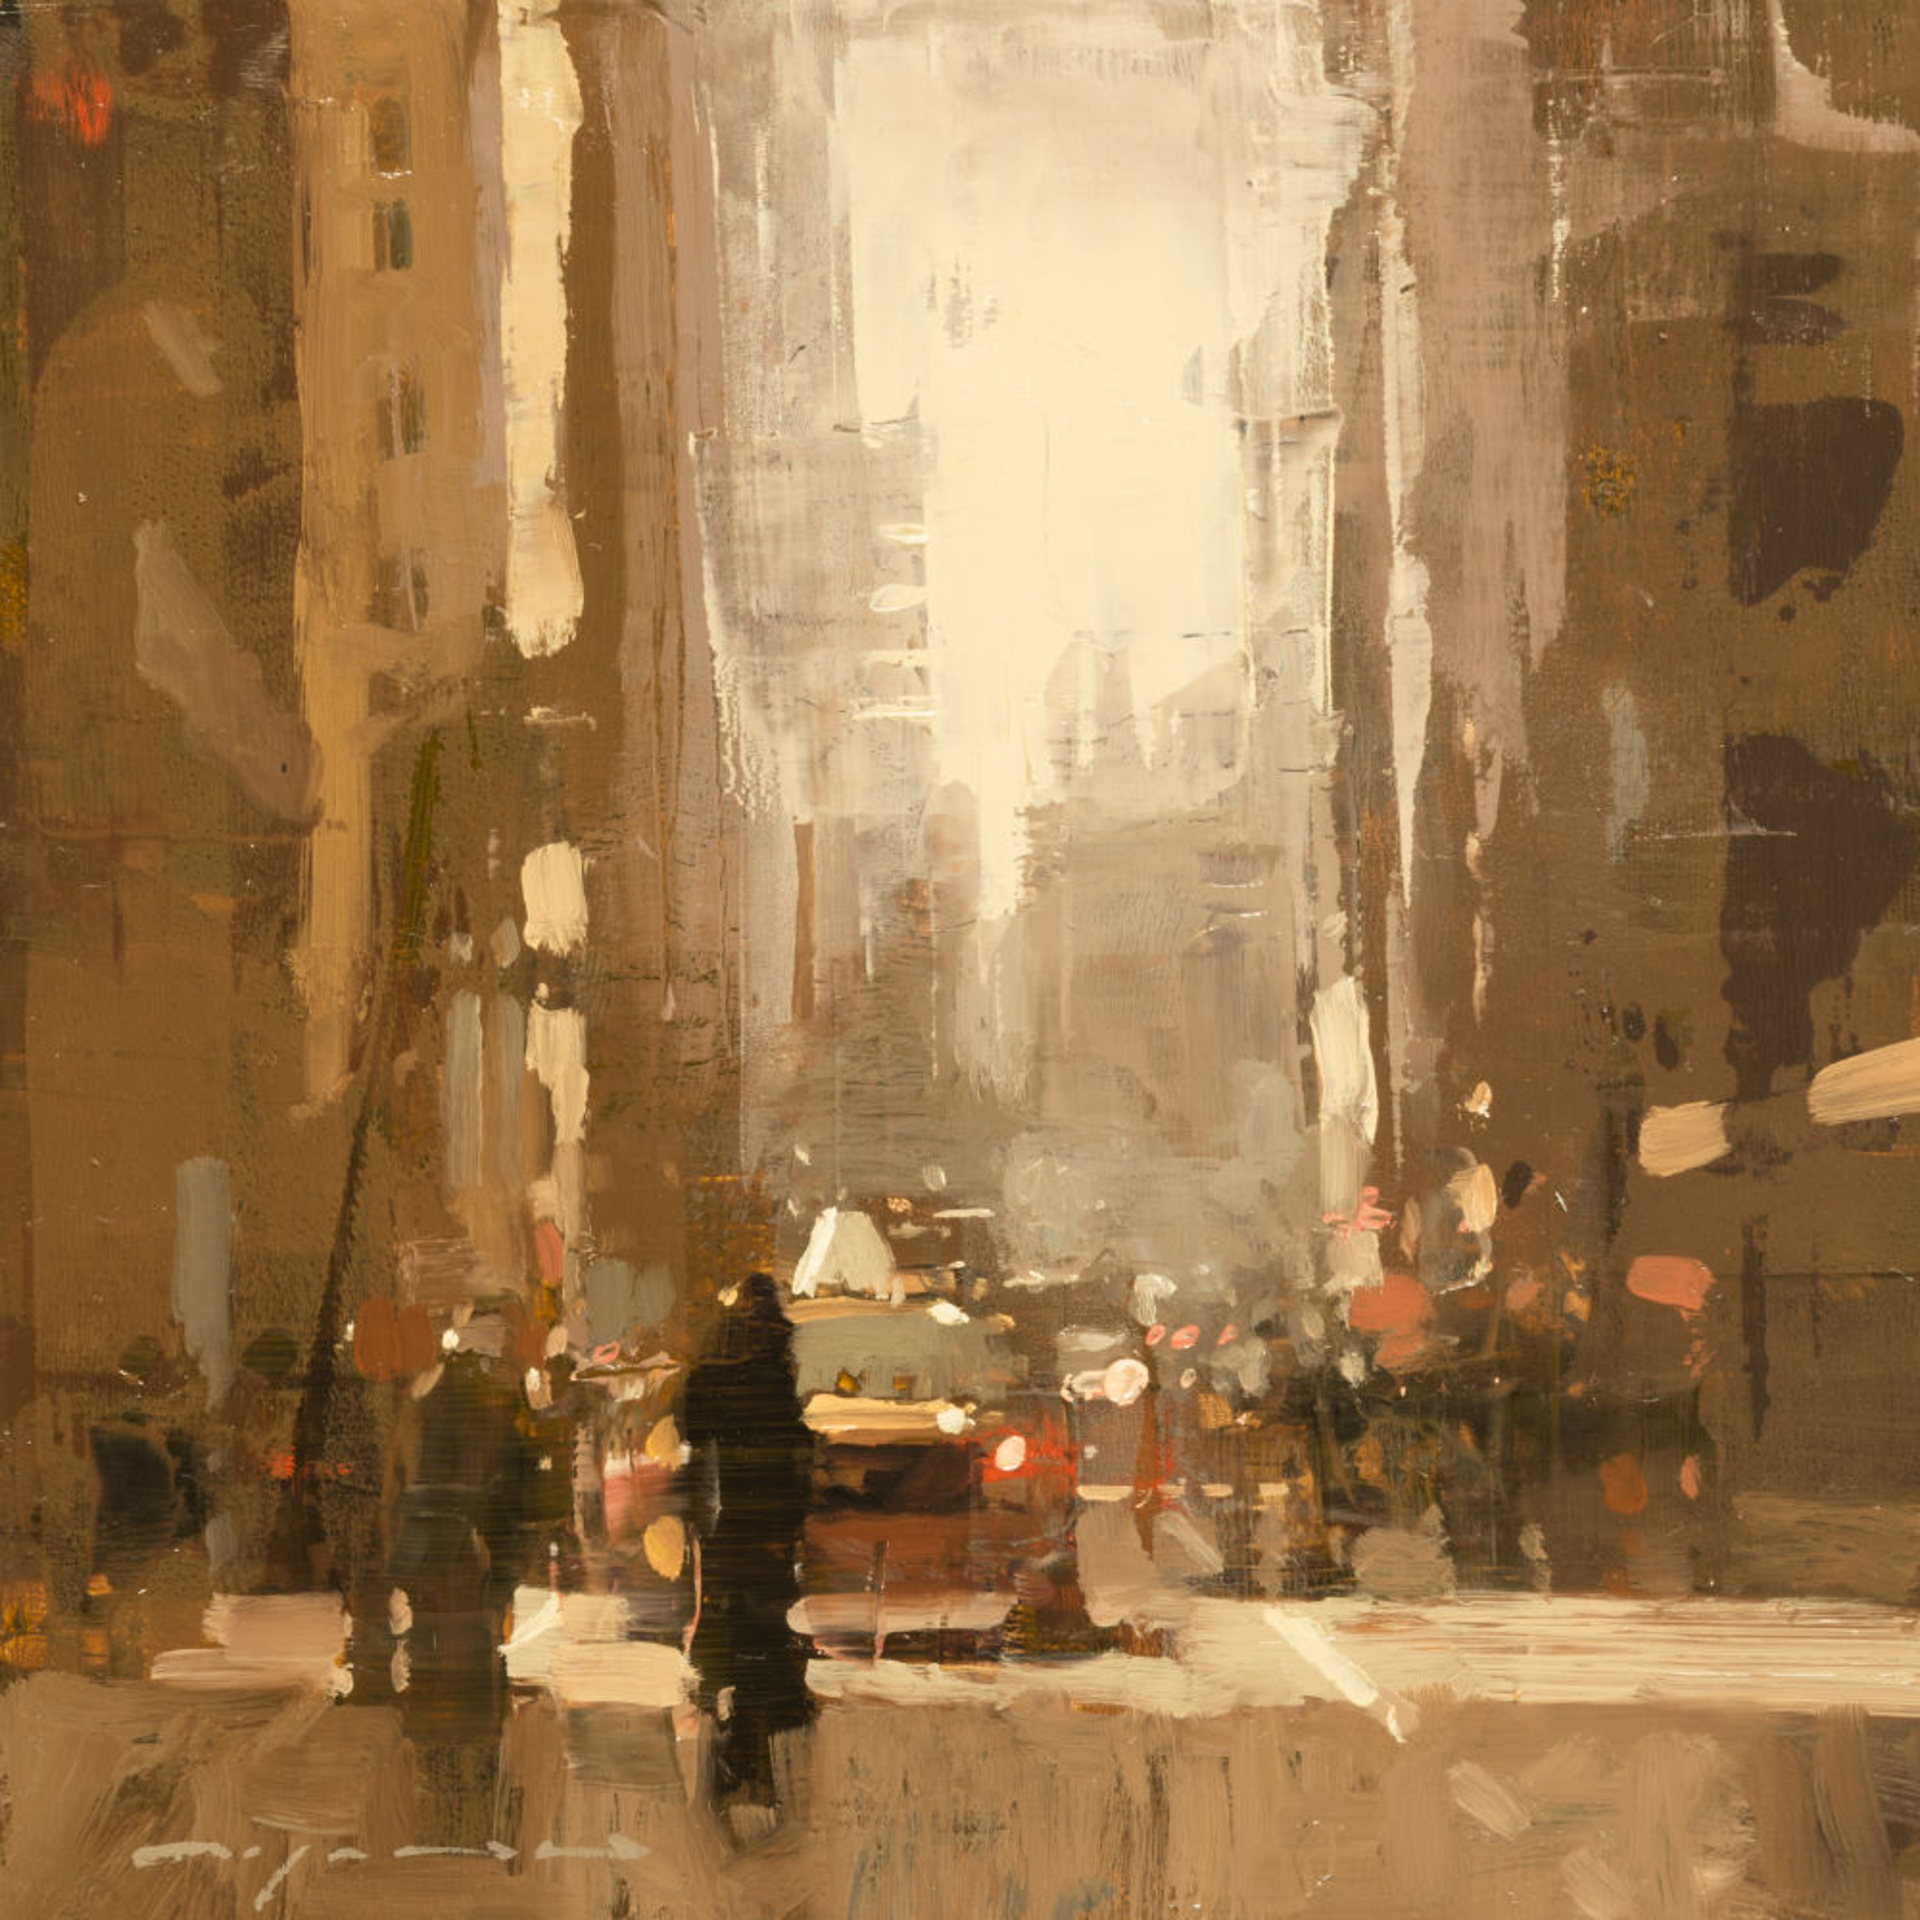 Cityscape  - Composed Form Study no. 20 by Jeremy Mann